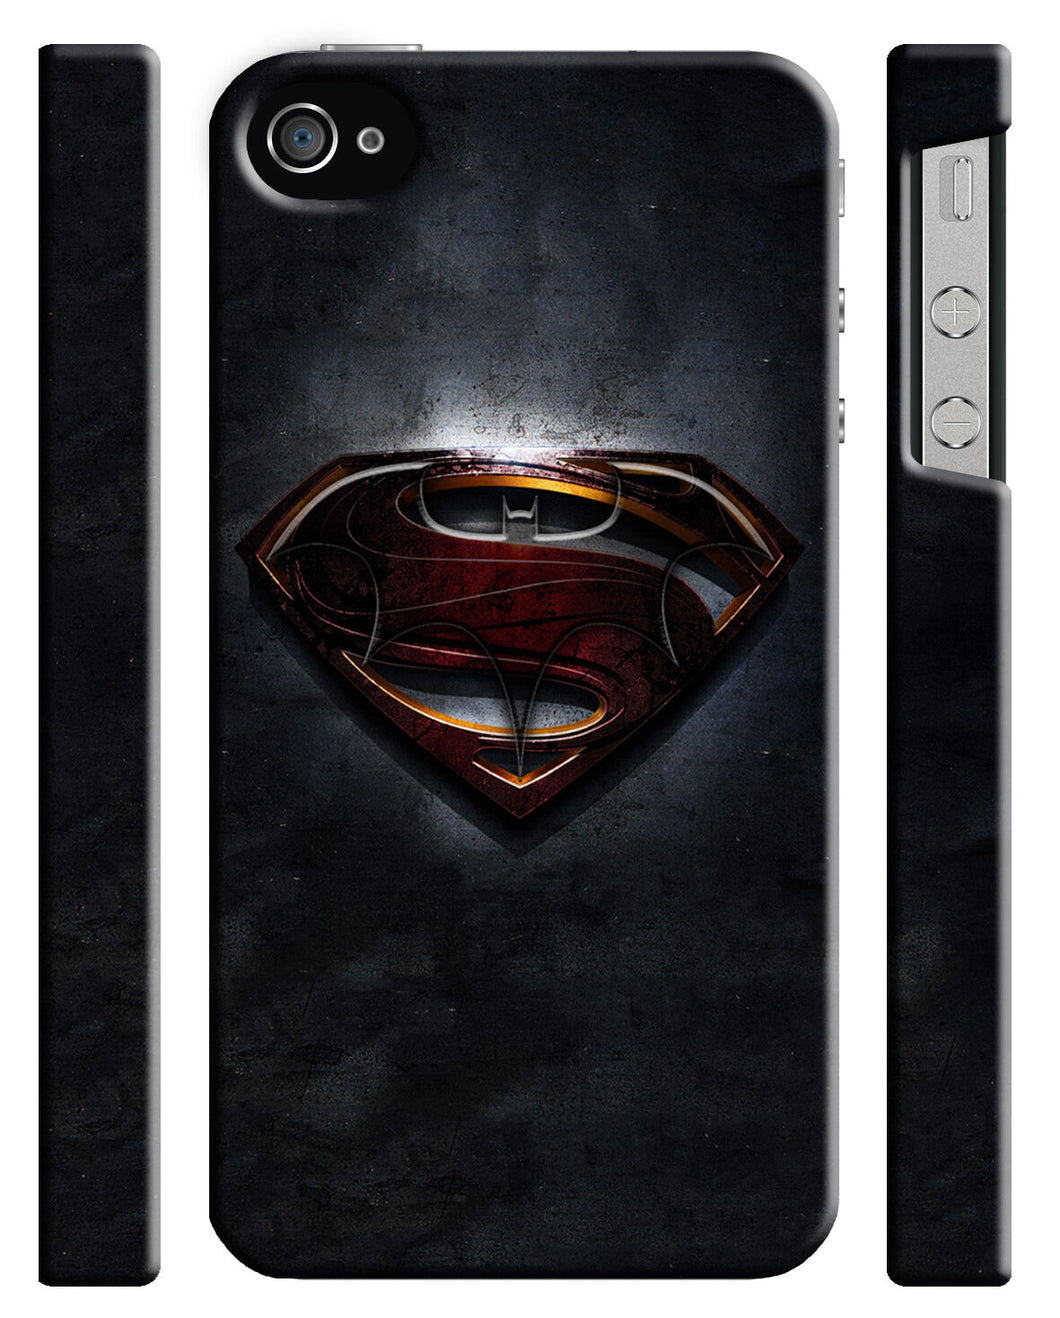 Iphone 4s 5s 5c SE 6 6S 7 8 X XS Max XR Plus Case Cover Super Hero Superman